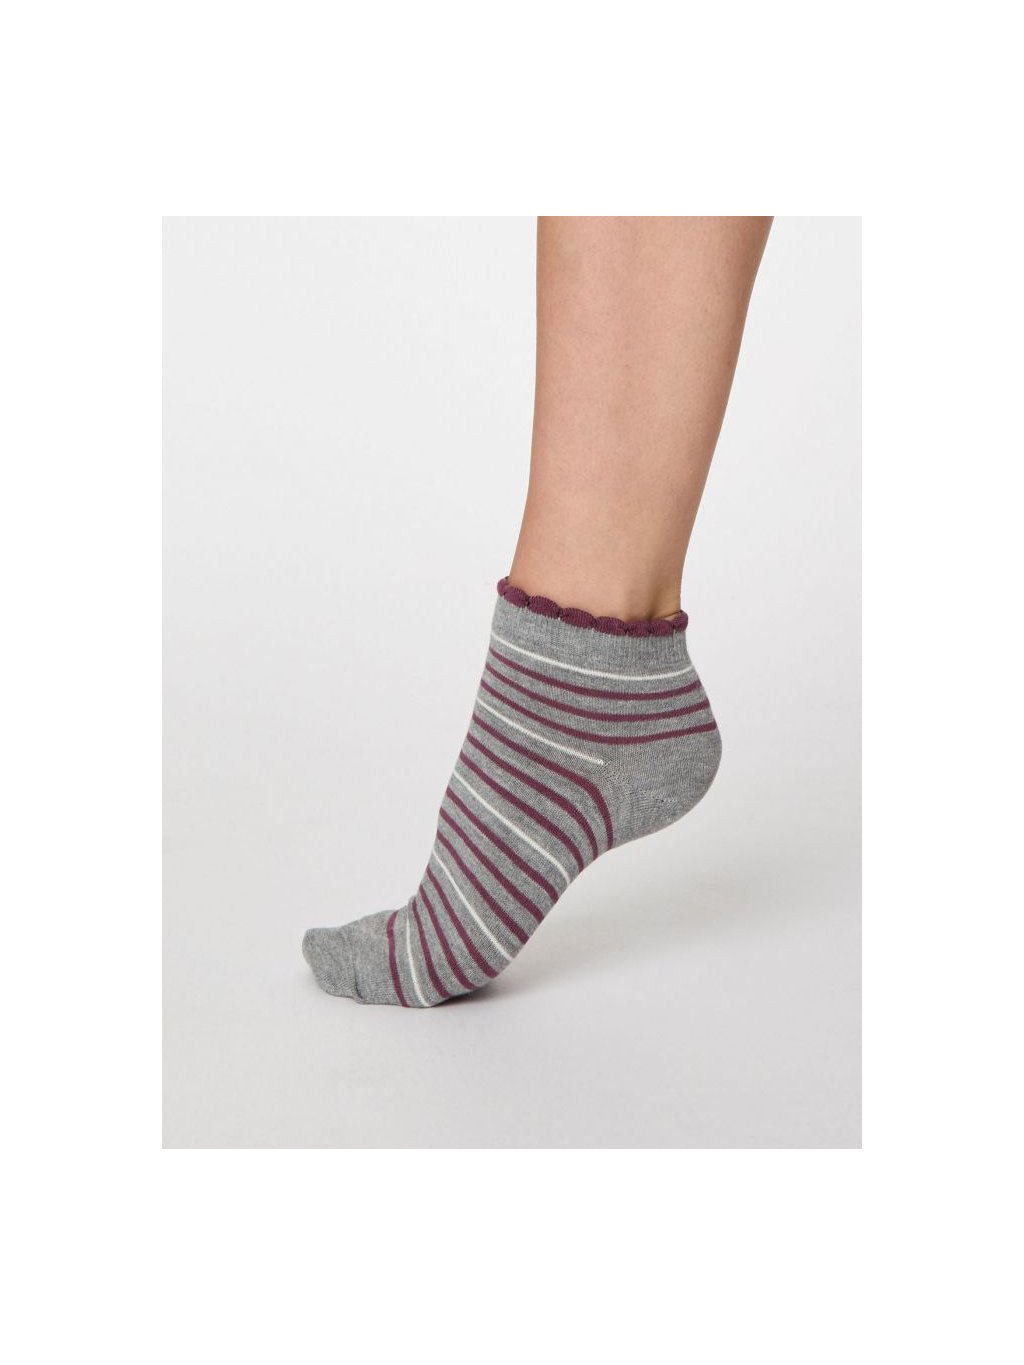 spw458 grey marle lorraine stripey bamboo ankle socks 1